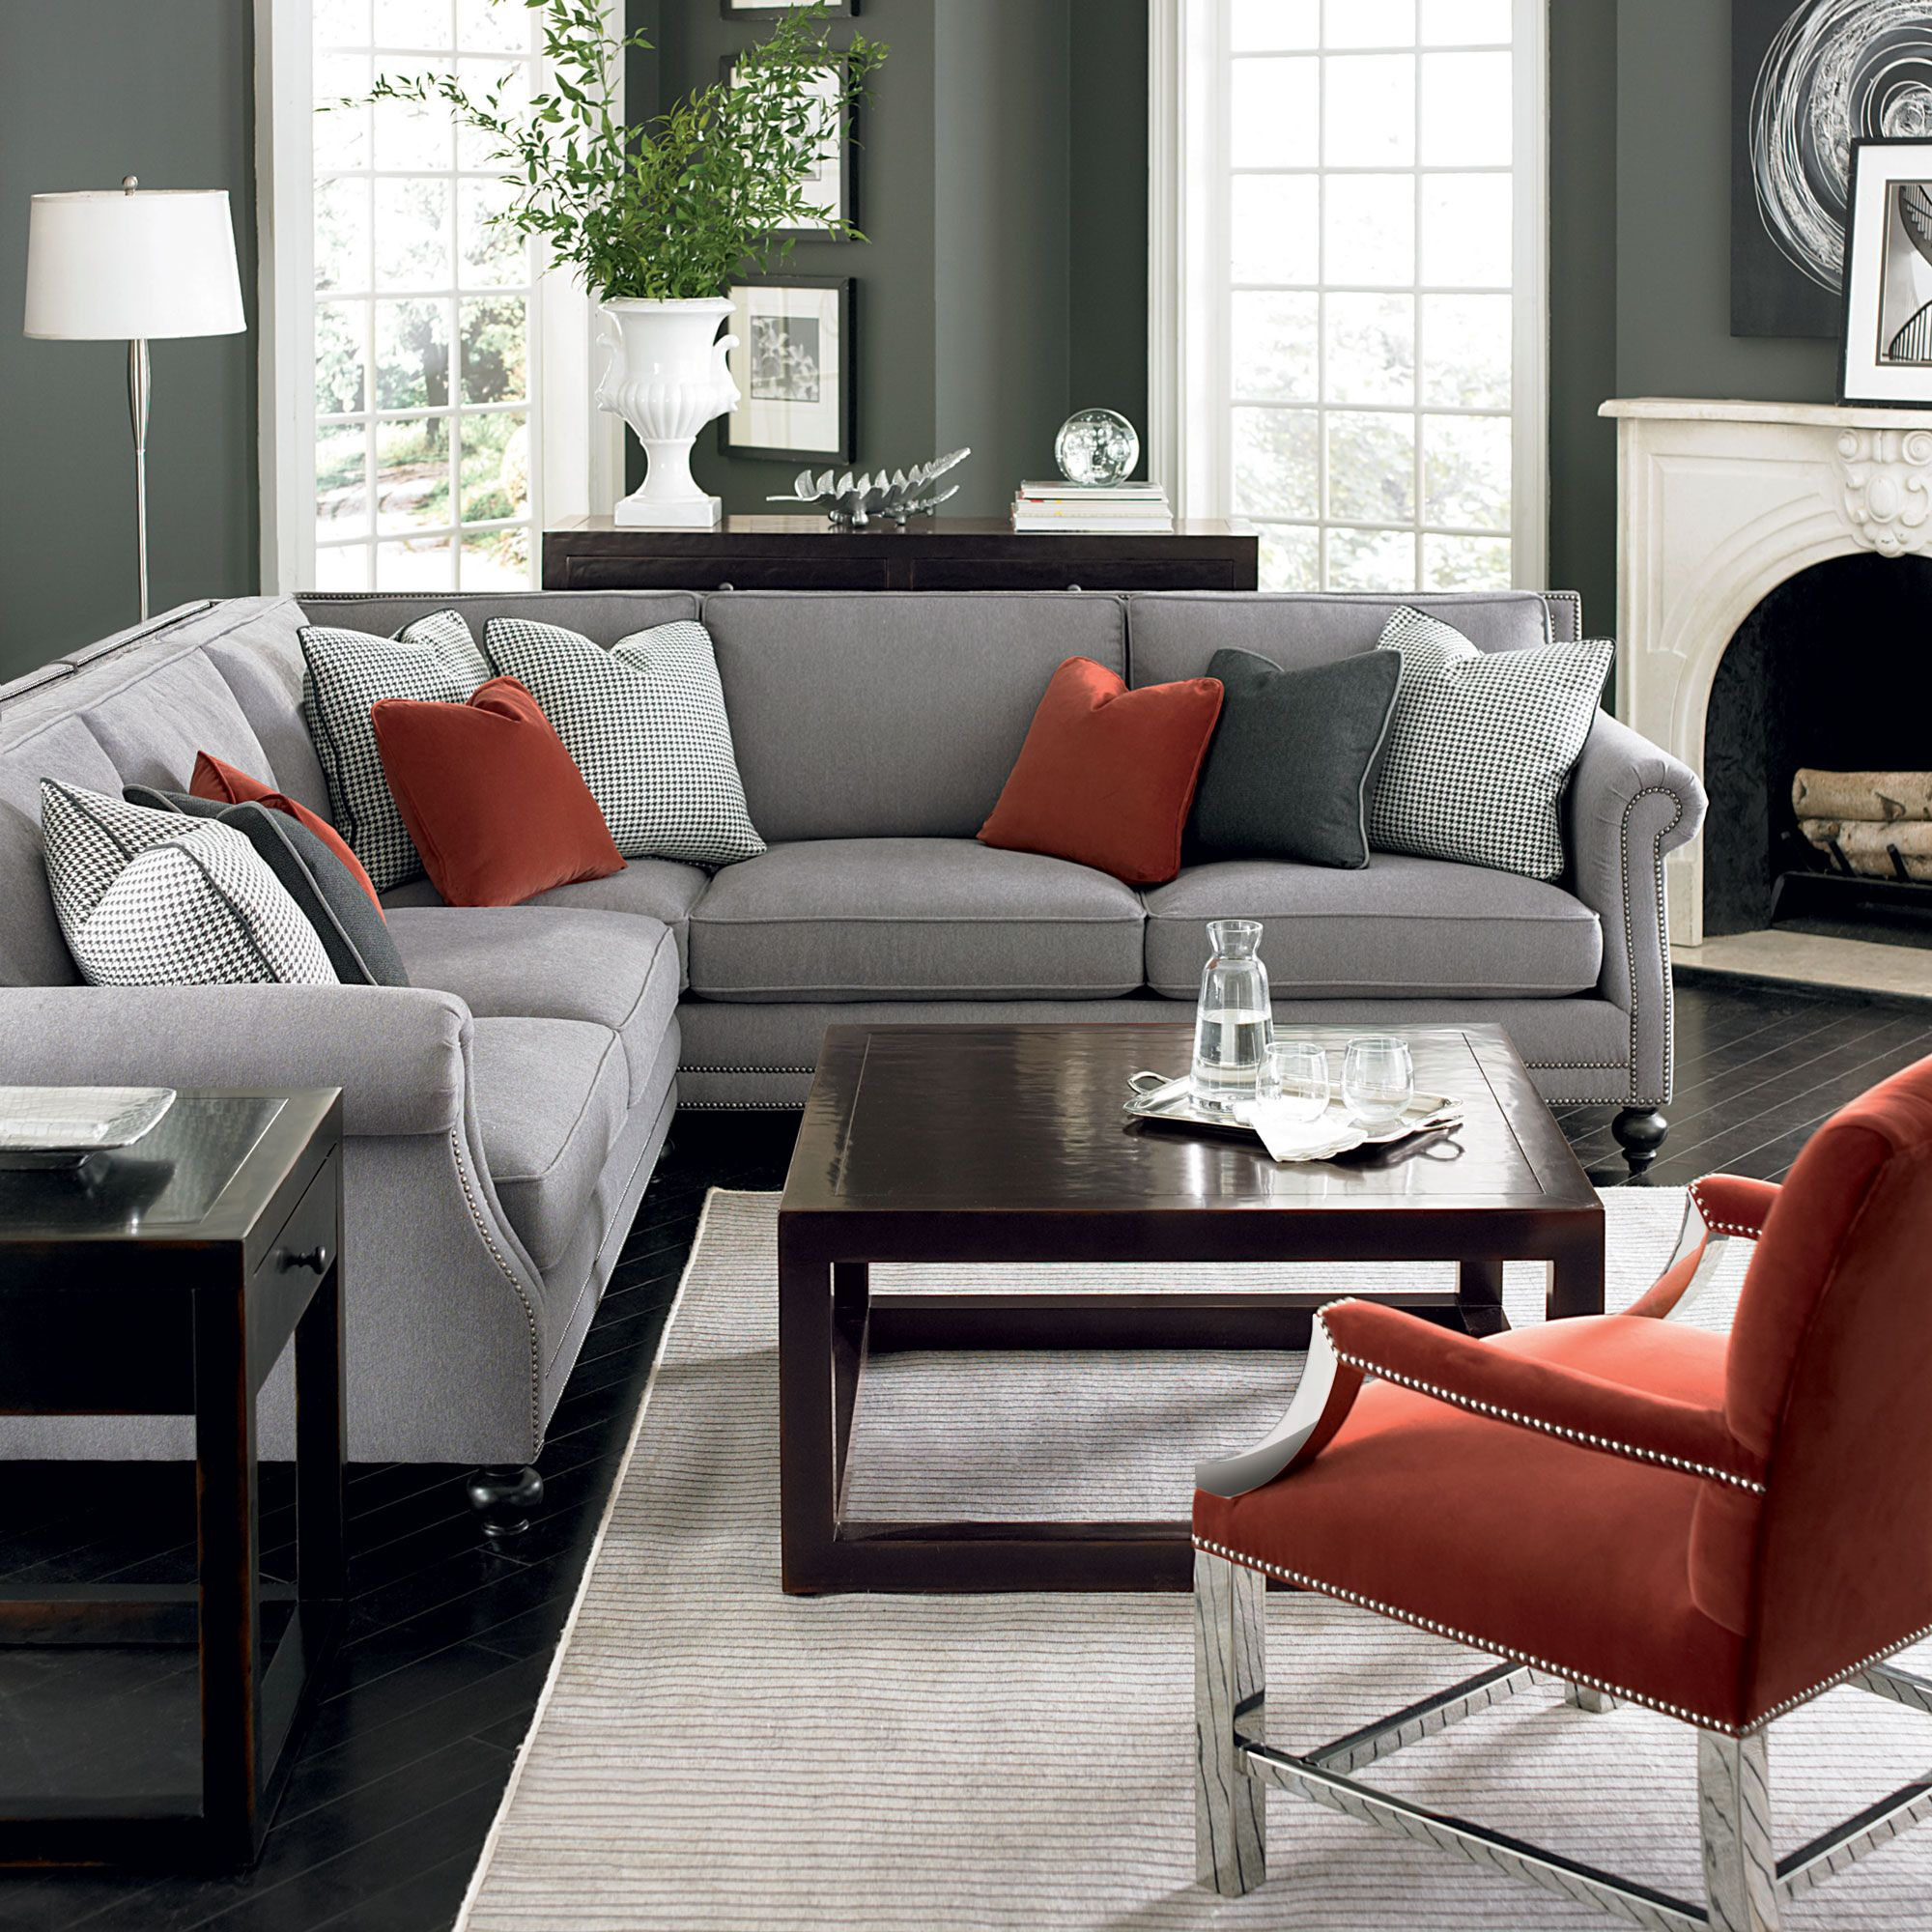 Bernhardt Living Room Brae Sectional Sofa B6893 B6842 Living Room Red Grey And Red Living Room Living Room Grey